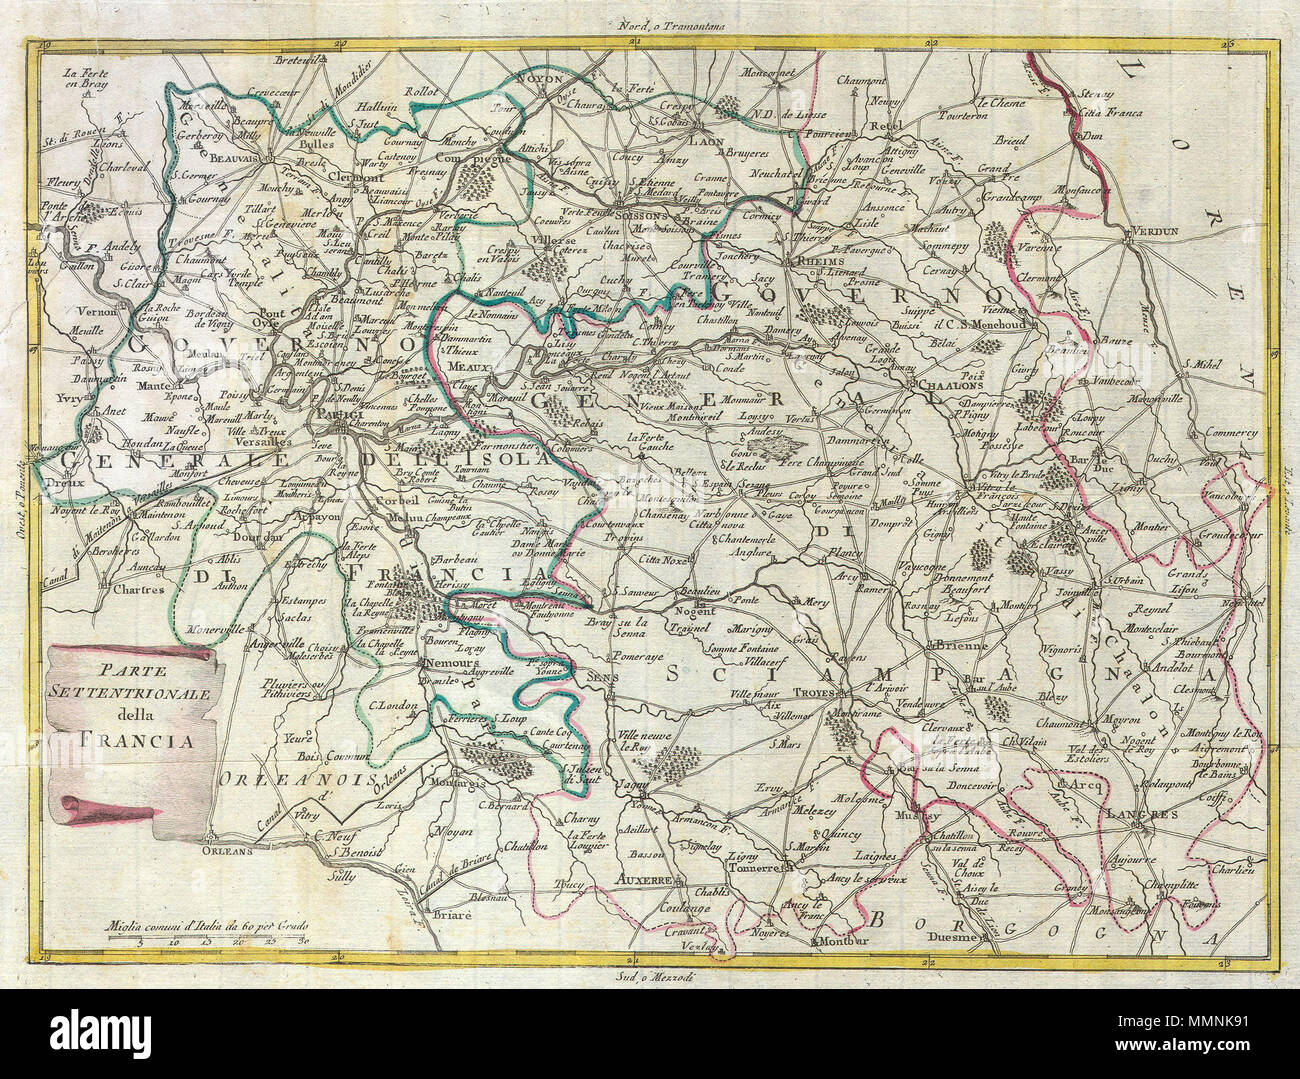 English Map Of France.English This Map Is A Hand Colored Depiction Of Central France